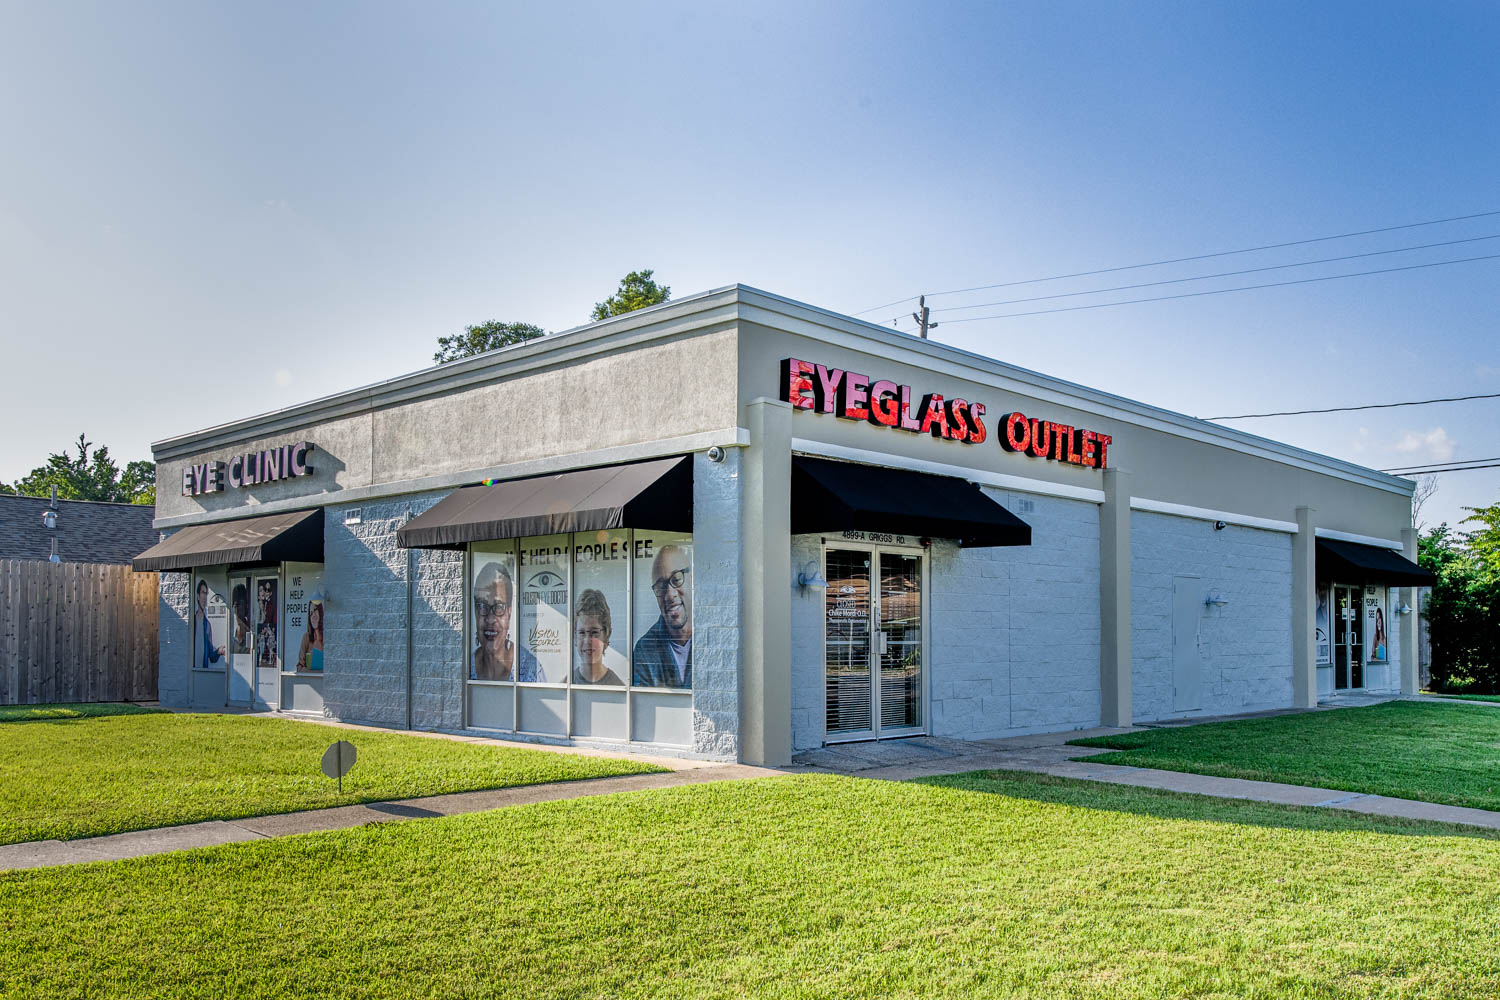 Houston Eye Doctor | Optometrists in 4899 Griggs Rd - Houston TX - Reviews - Photos - Phone Number